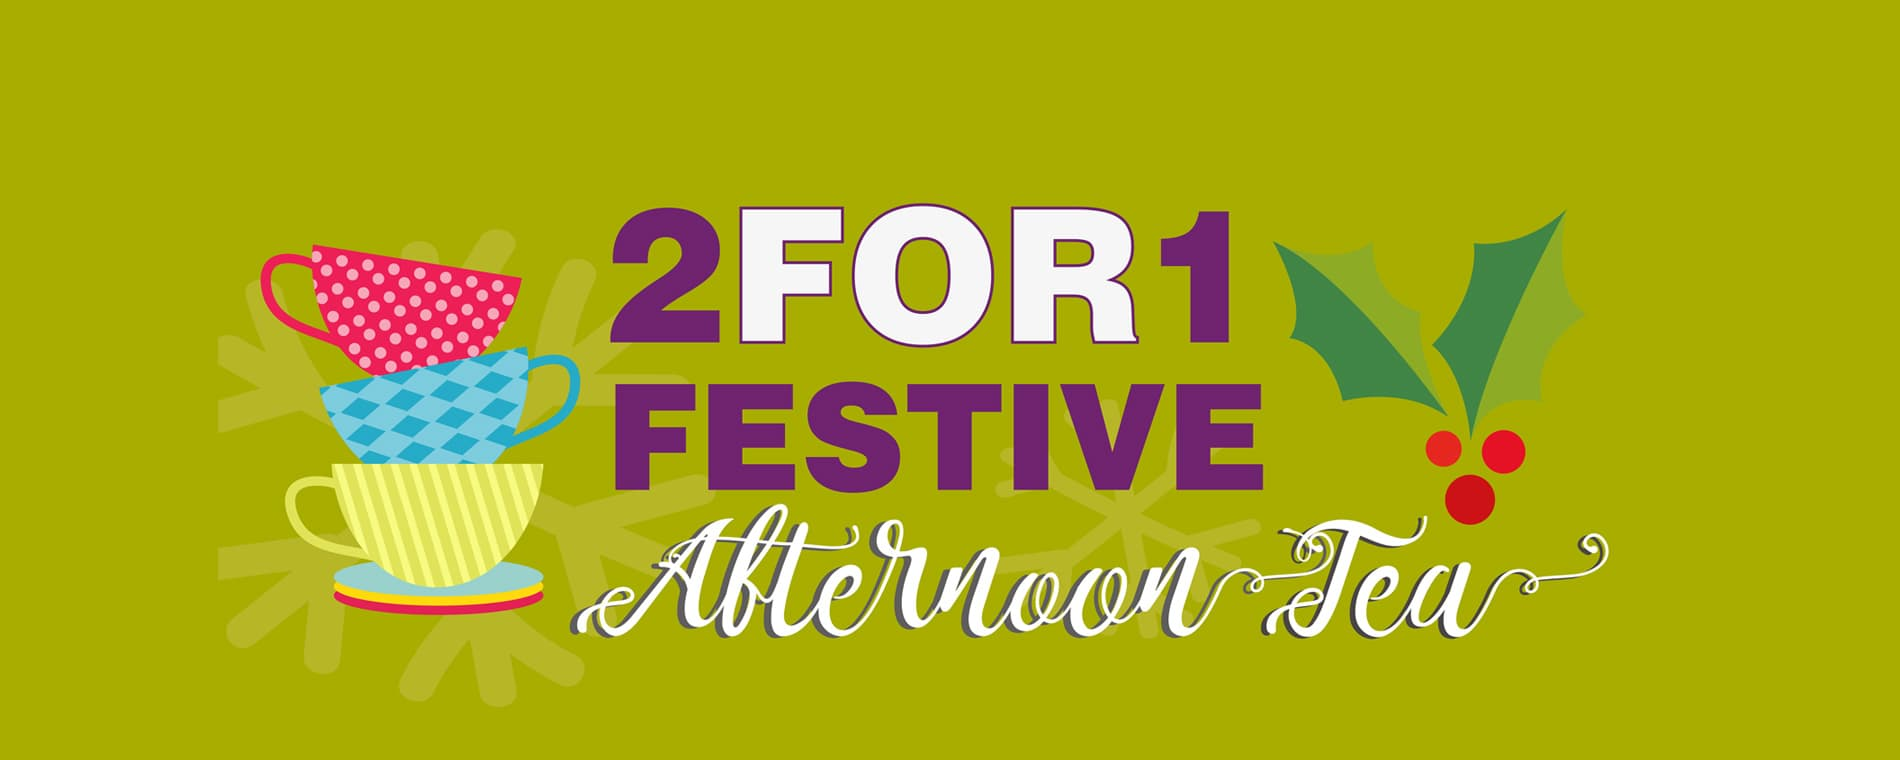 Festive Afternoon Tea Deal